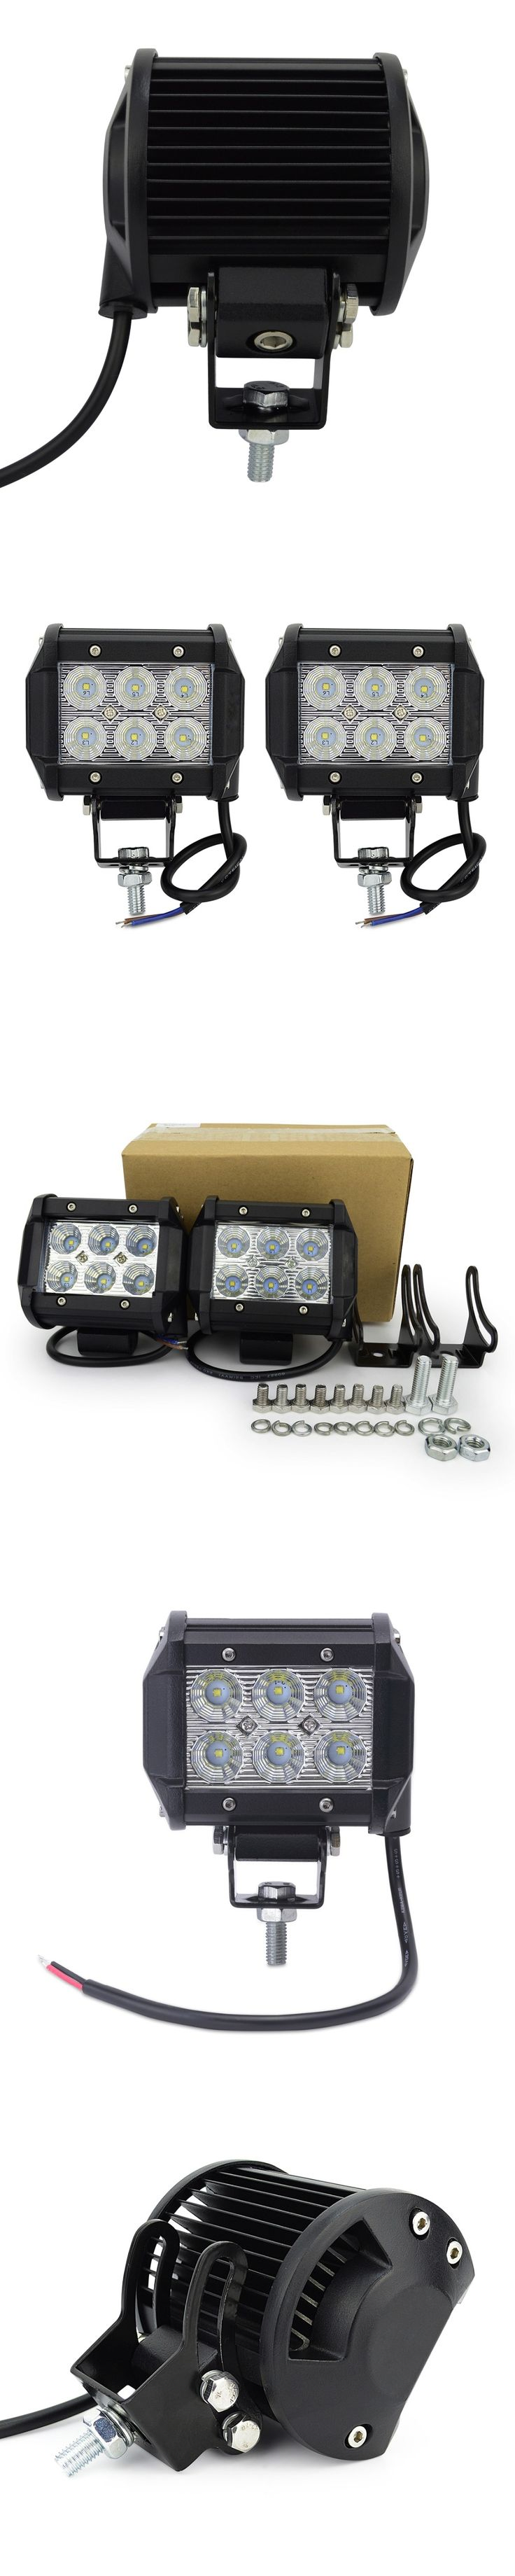 1pcs 4inch motorcycle led work light led 18w  led offroad light bar off road 4X4 ATV for truck car motorcycle Boat tractor truck